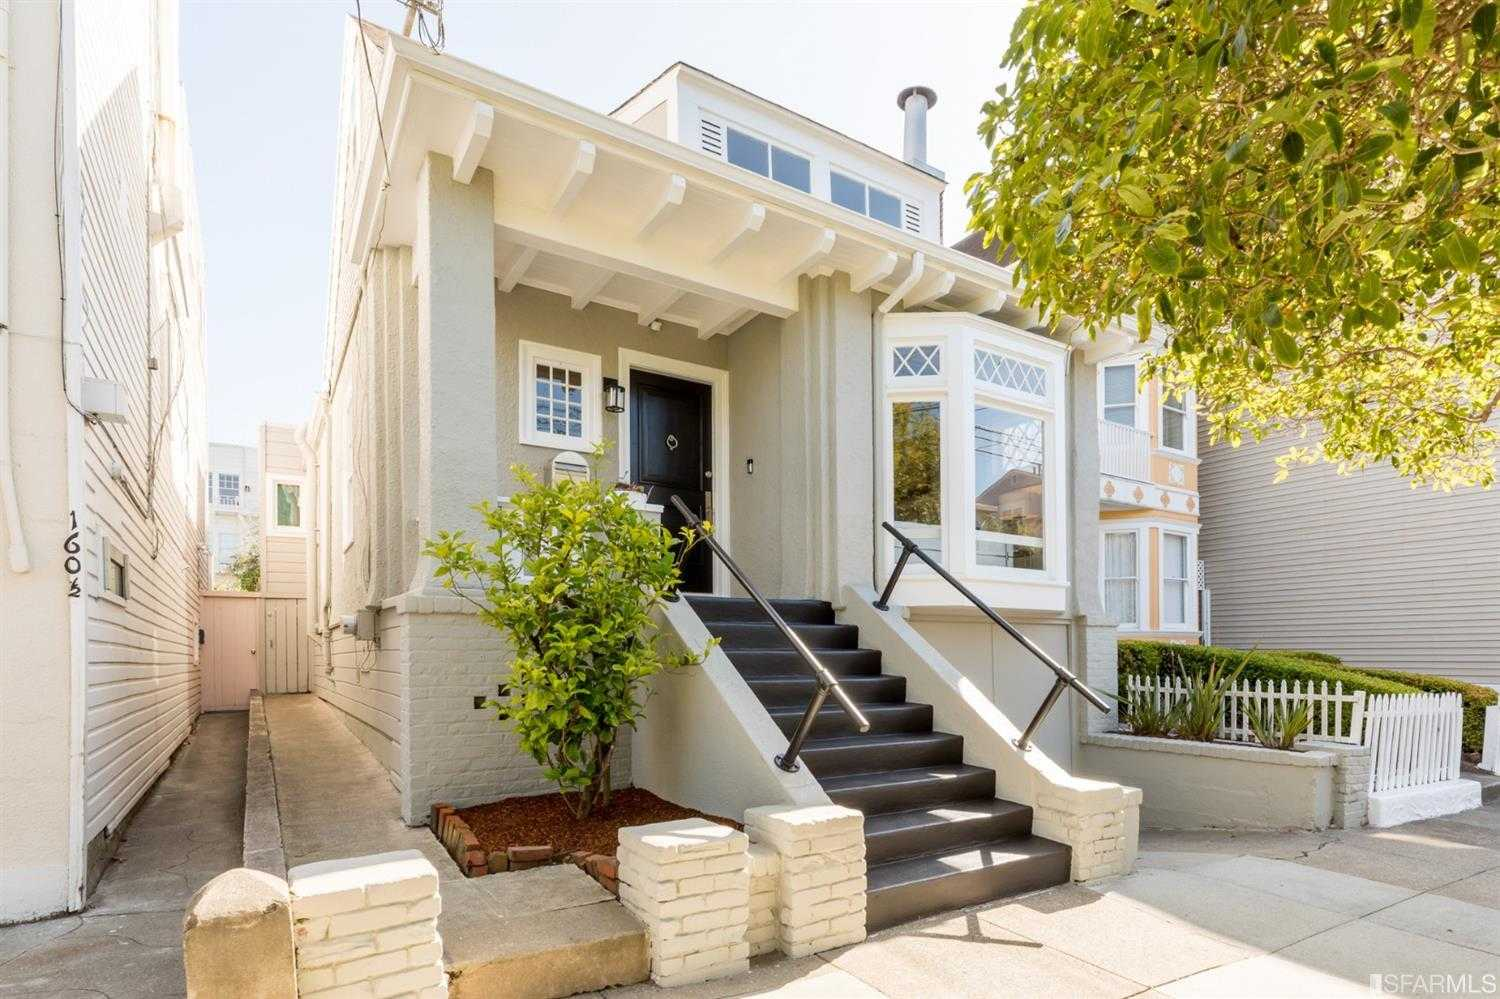 $1,749,000 - 2Br/1Ba -  for Sale in San Francisco